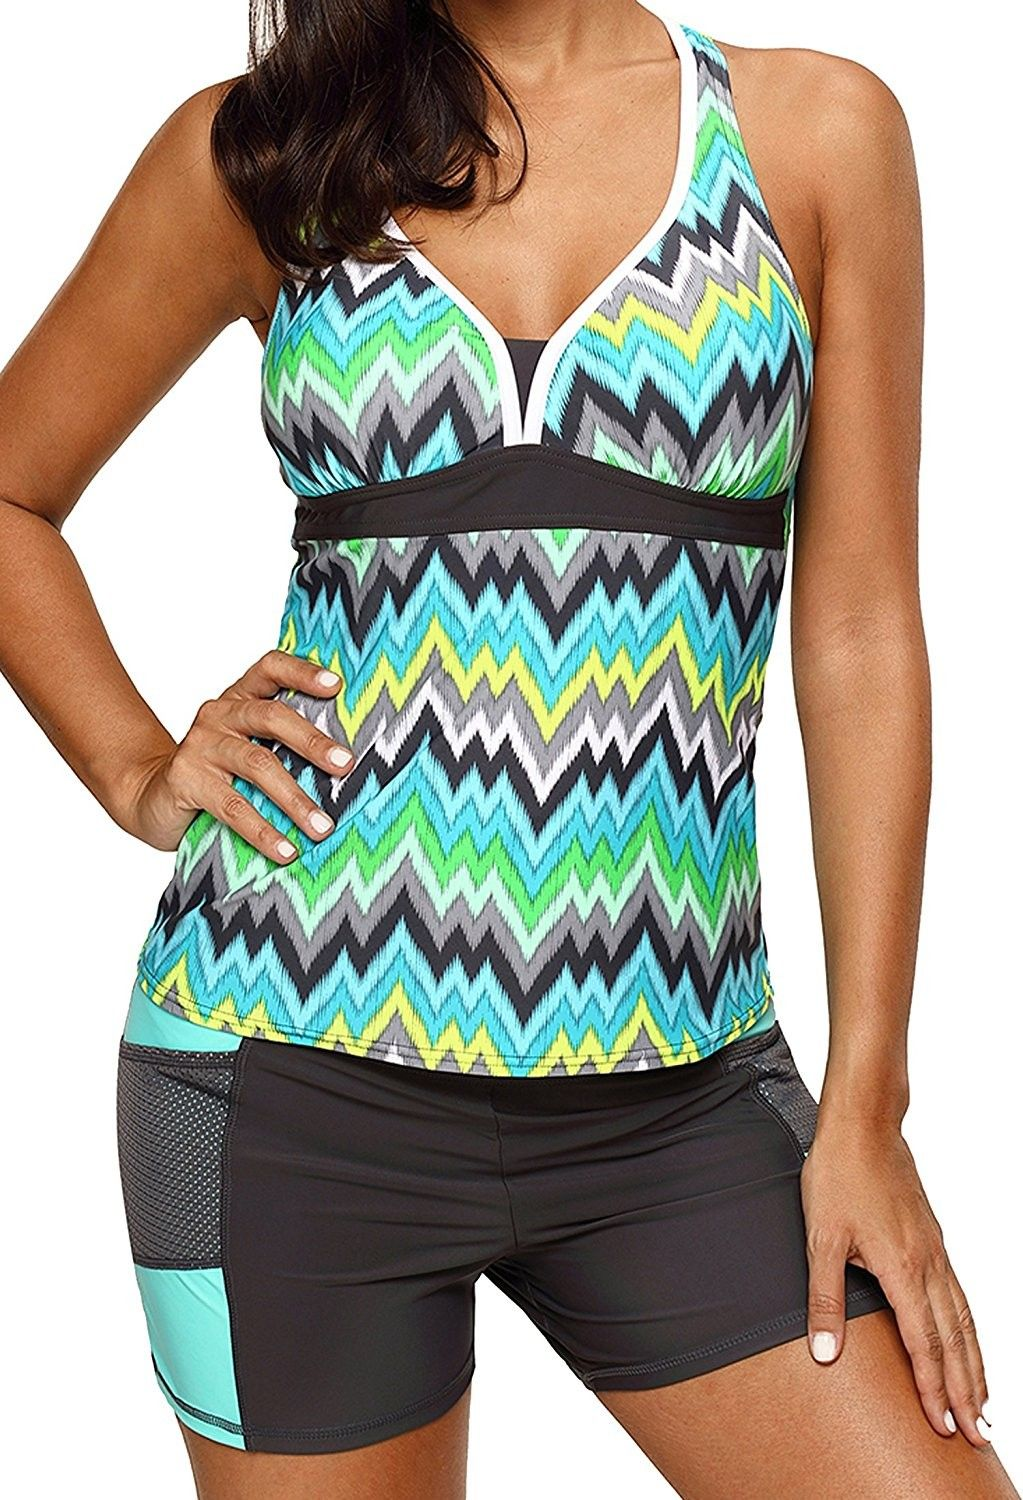 caca9f1ef2 Womens Color Block Printed Racerback Tankini Swimsuits with Shorts S - XXXL  - Green - C8186GRS6AA,Women's Clothing, Swimsuits & Cover Ups, Tankinis  #women ...